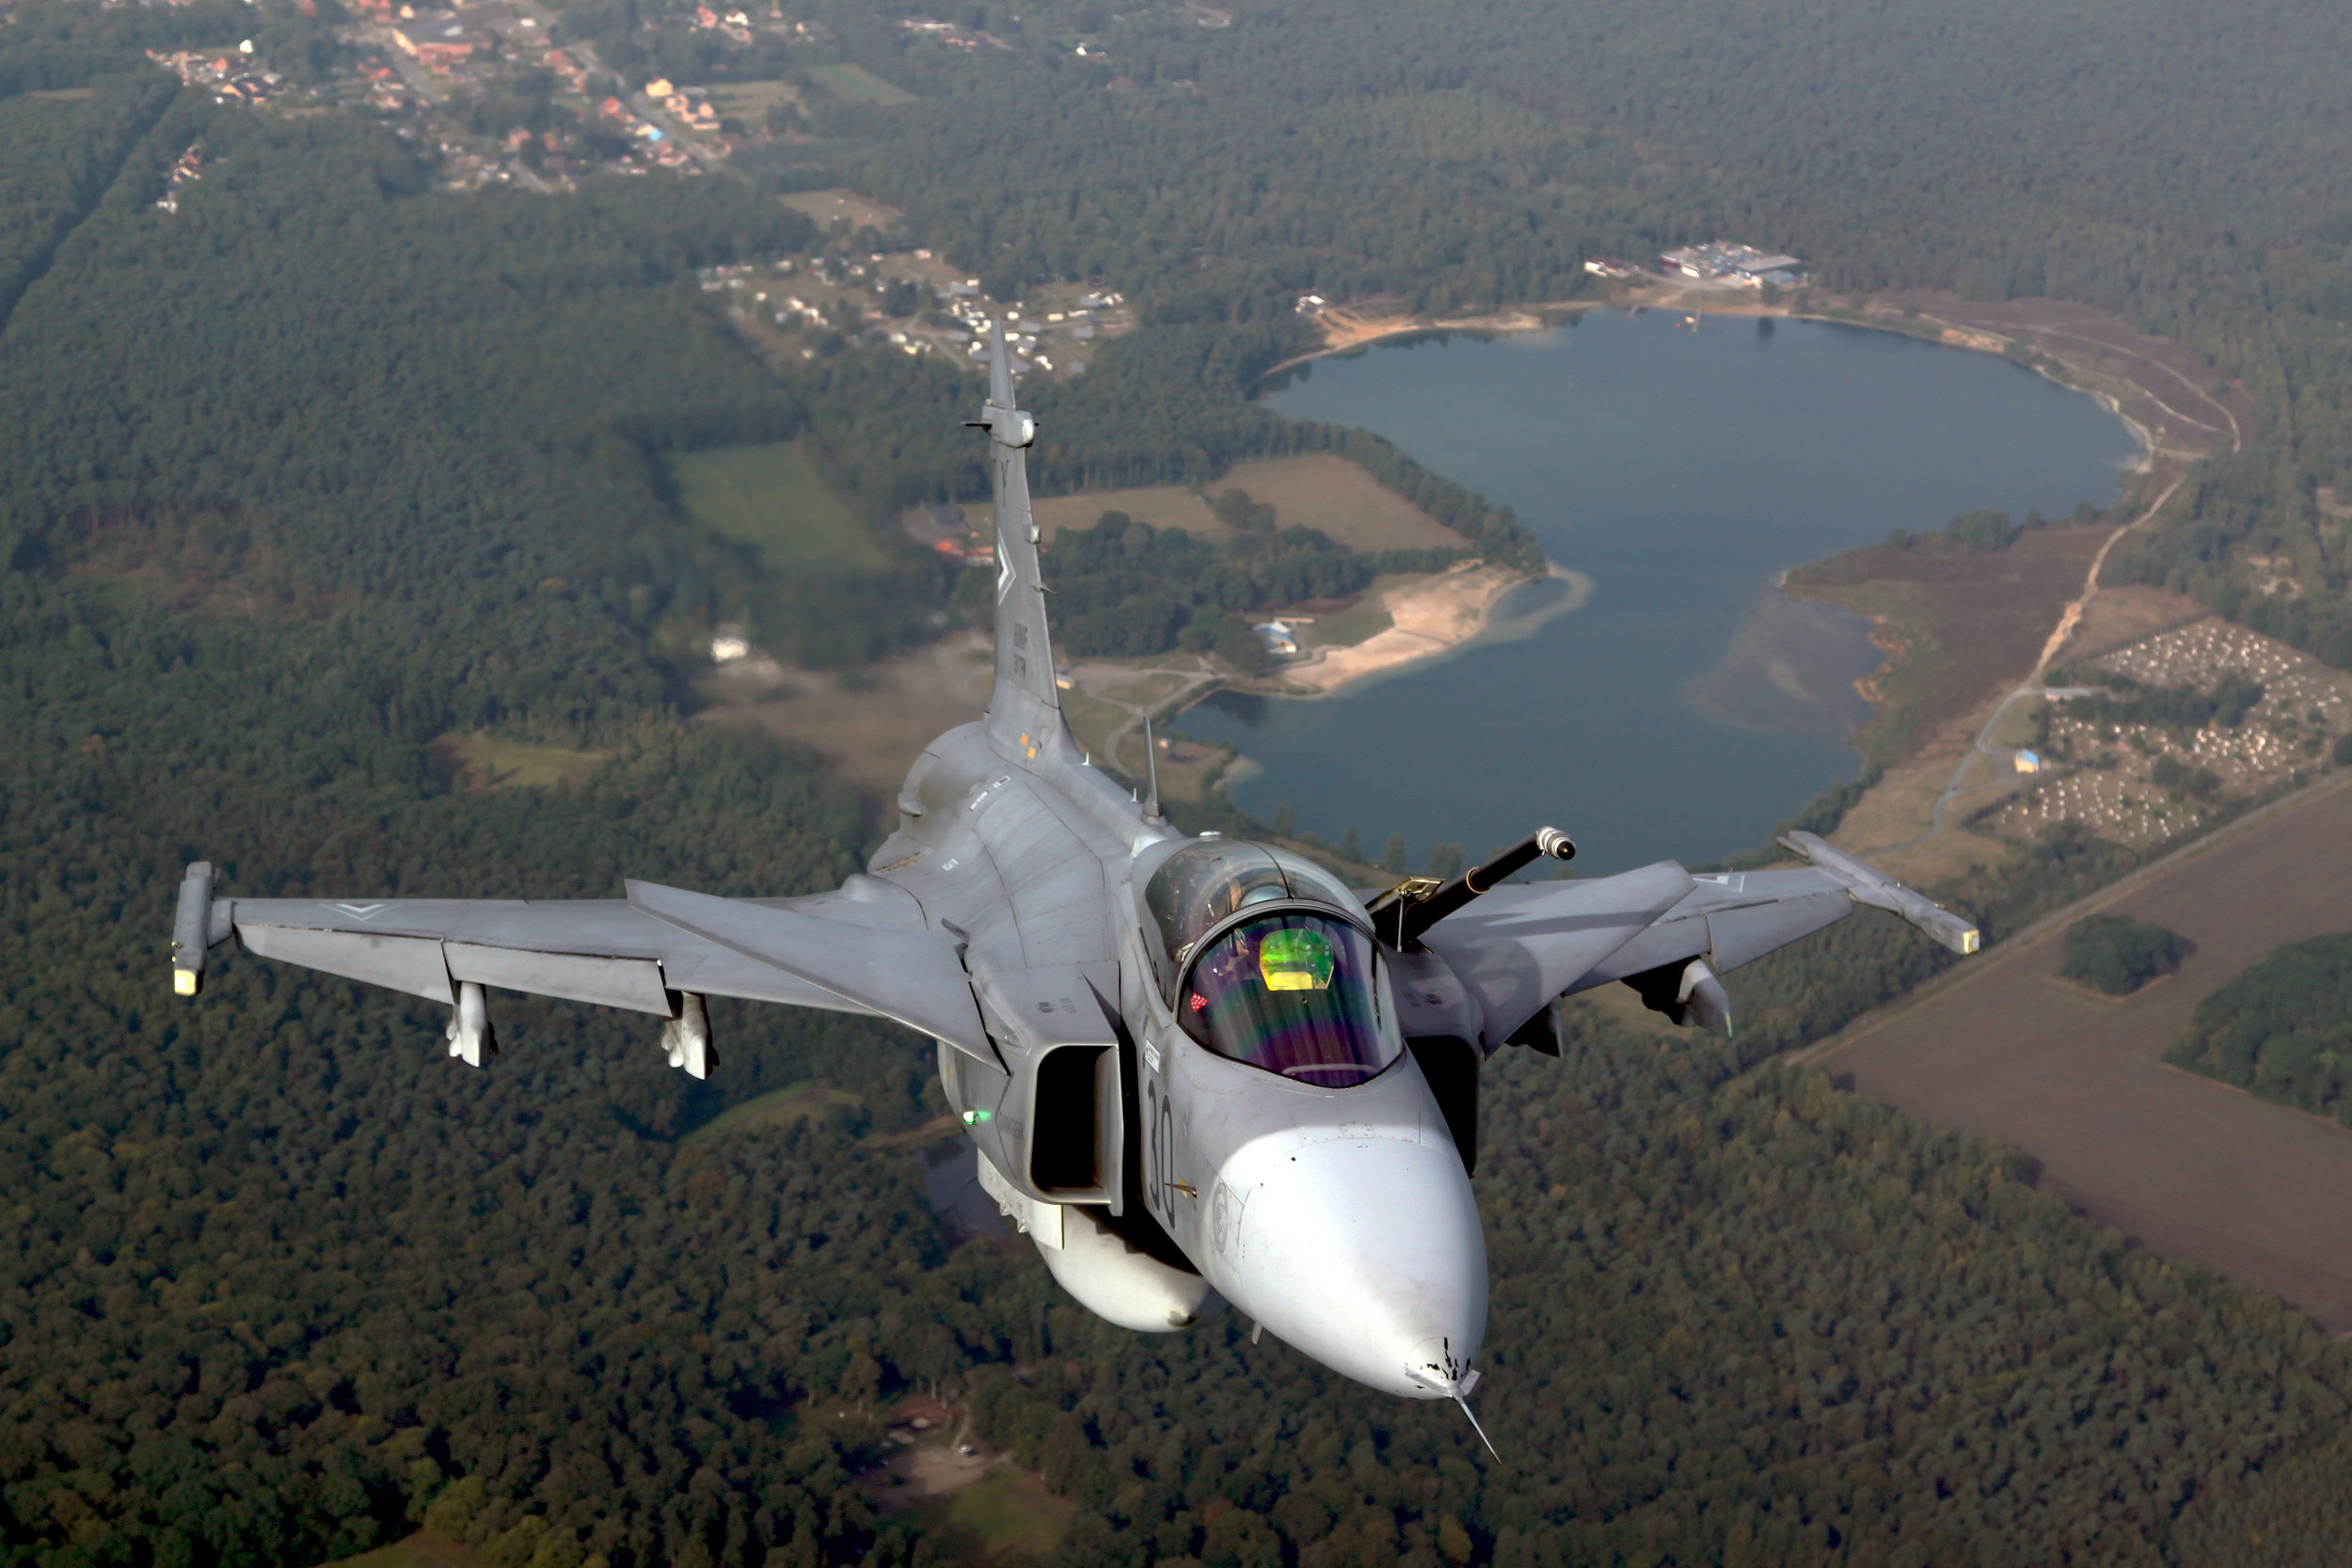 Ready for aerial refueling for the JAS-39 Gripen.